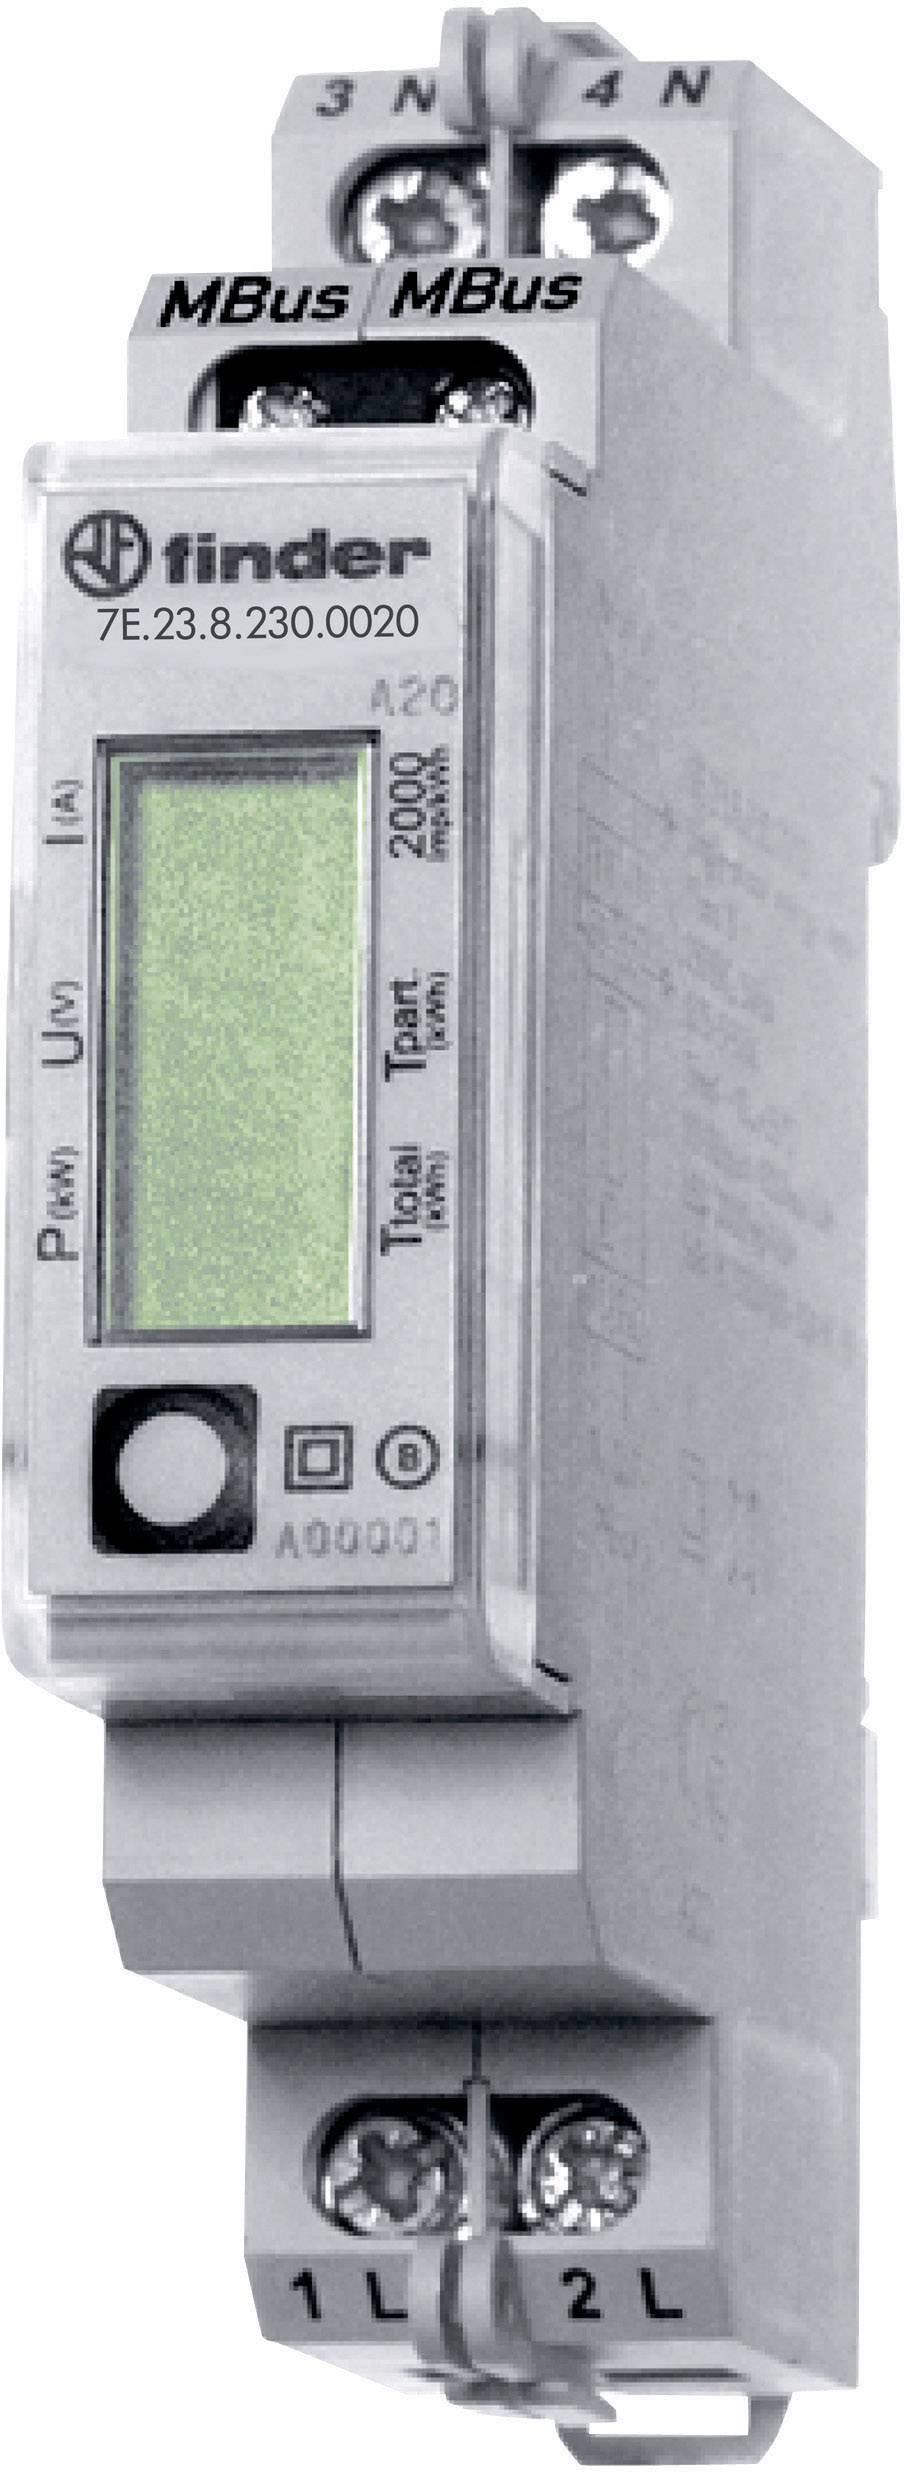 Finder 7E 23 8 230 0020 Electricity meter (AC) Digital 32 A